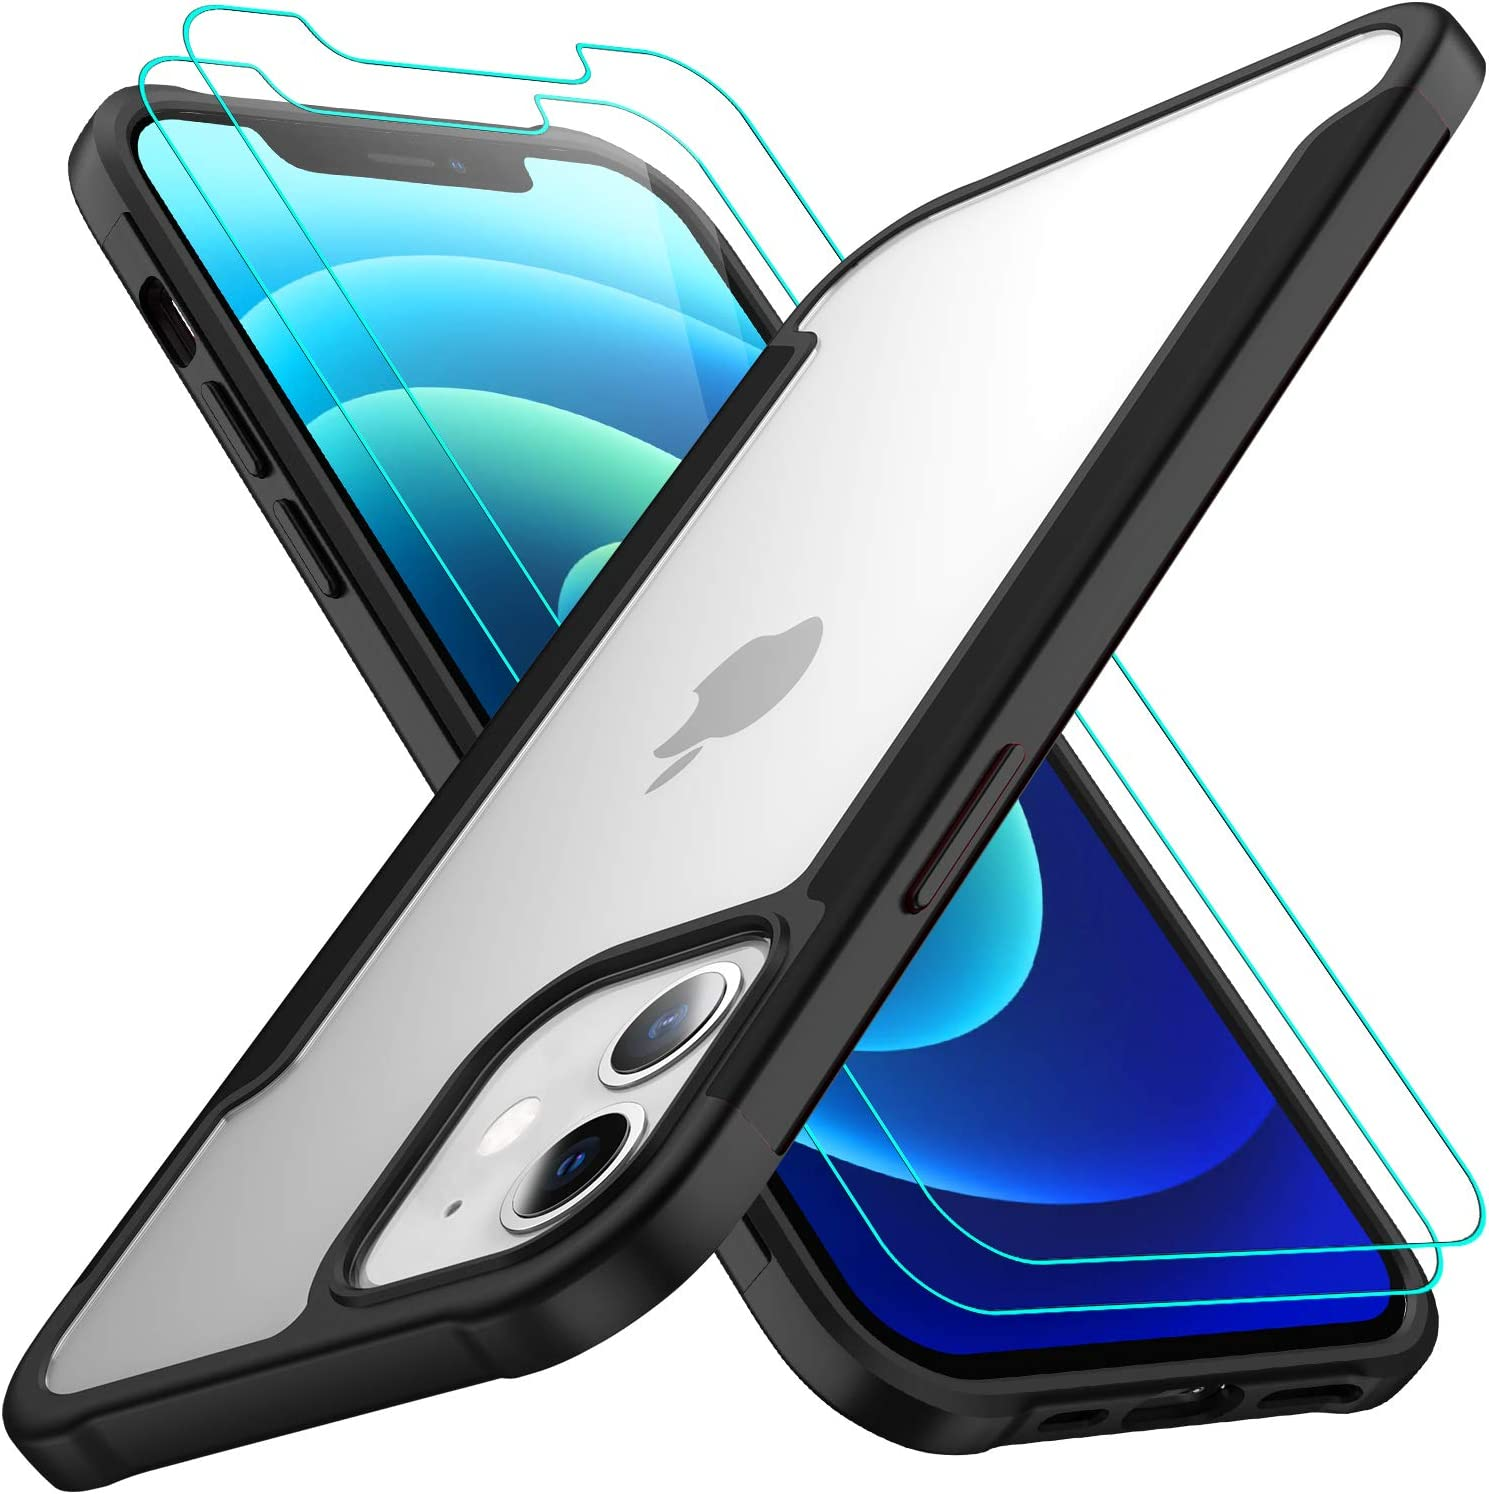 AEDILYS Compatible with iPhone 12 Mini Case (2020),[Airbag Series] with [2 x Tempered Glass Screen Protector] [ Military Grade ] | 15Ft. Drop Tested [Scratch-Resistant] 5.4 Inch (Black)